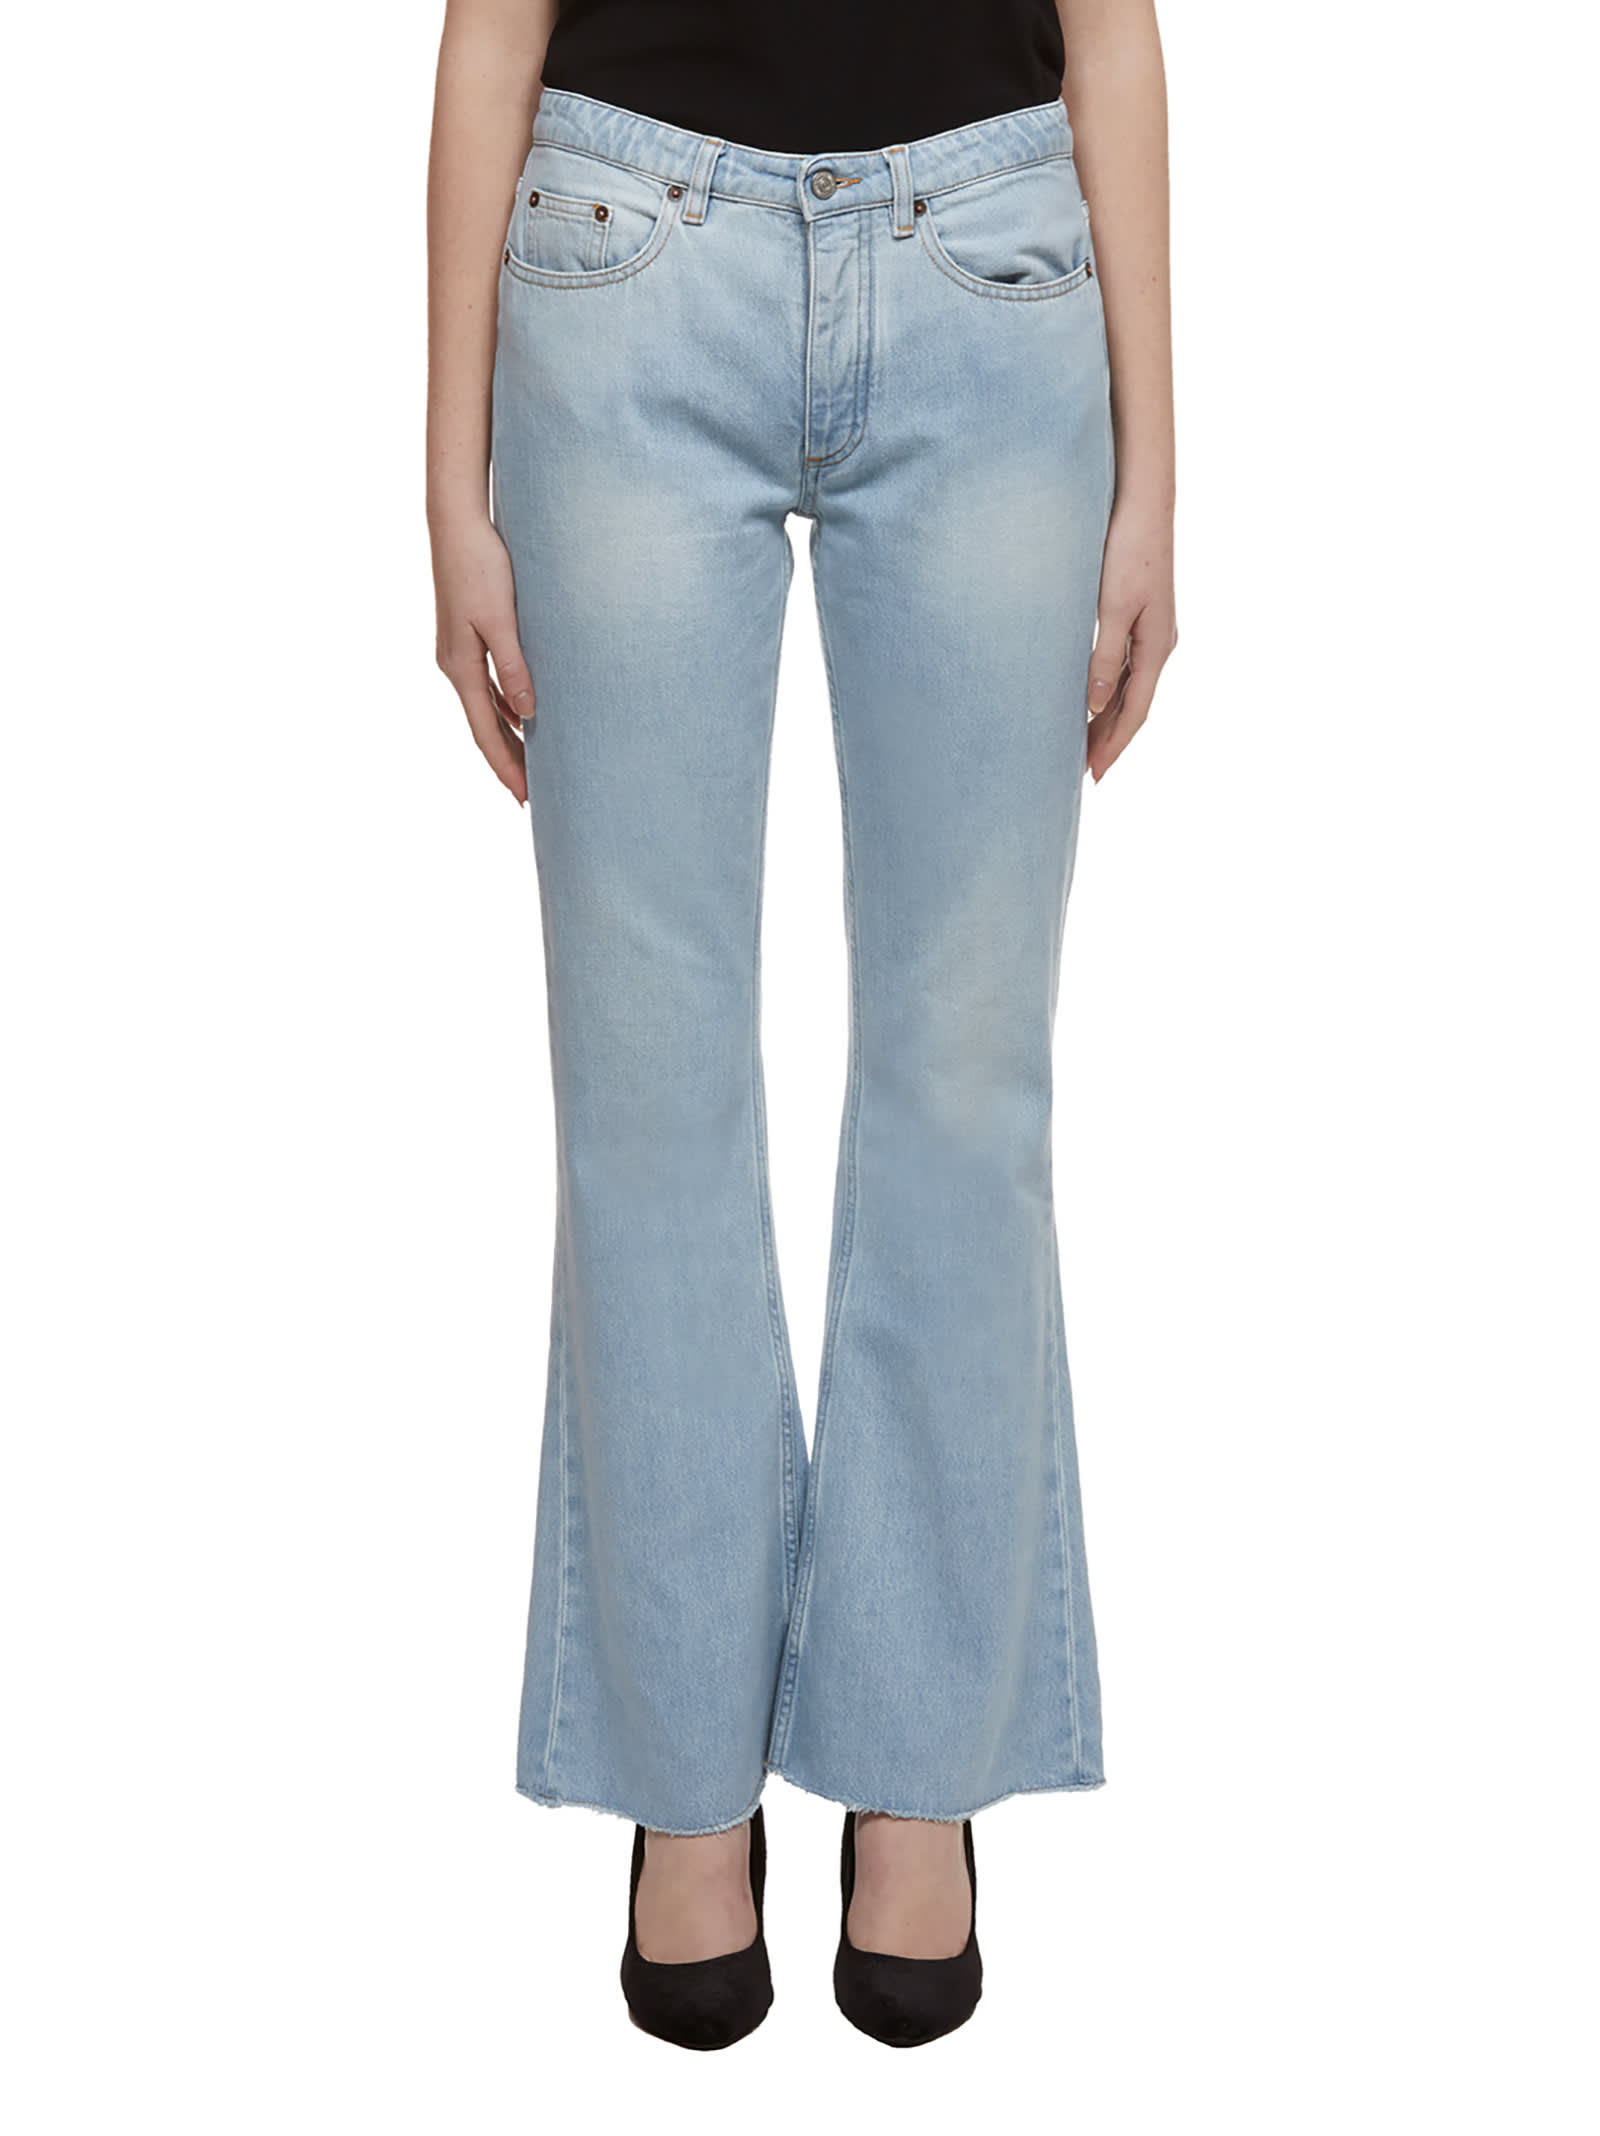 MM6 Maison Margiela Denim Bootcut Jeans